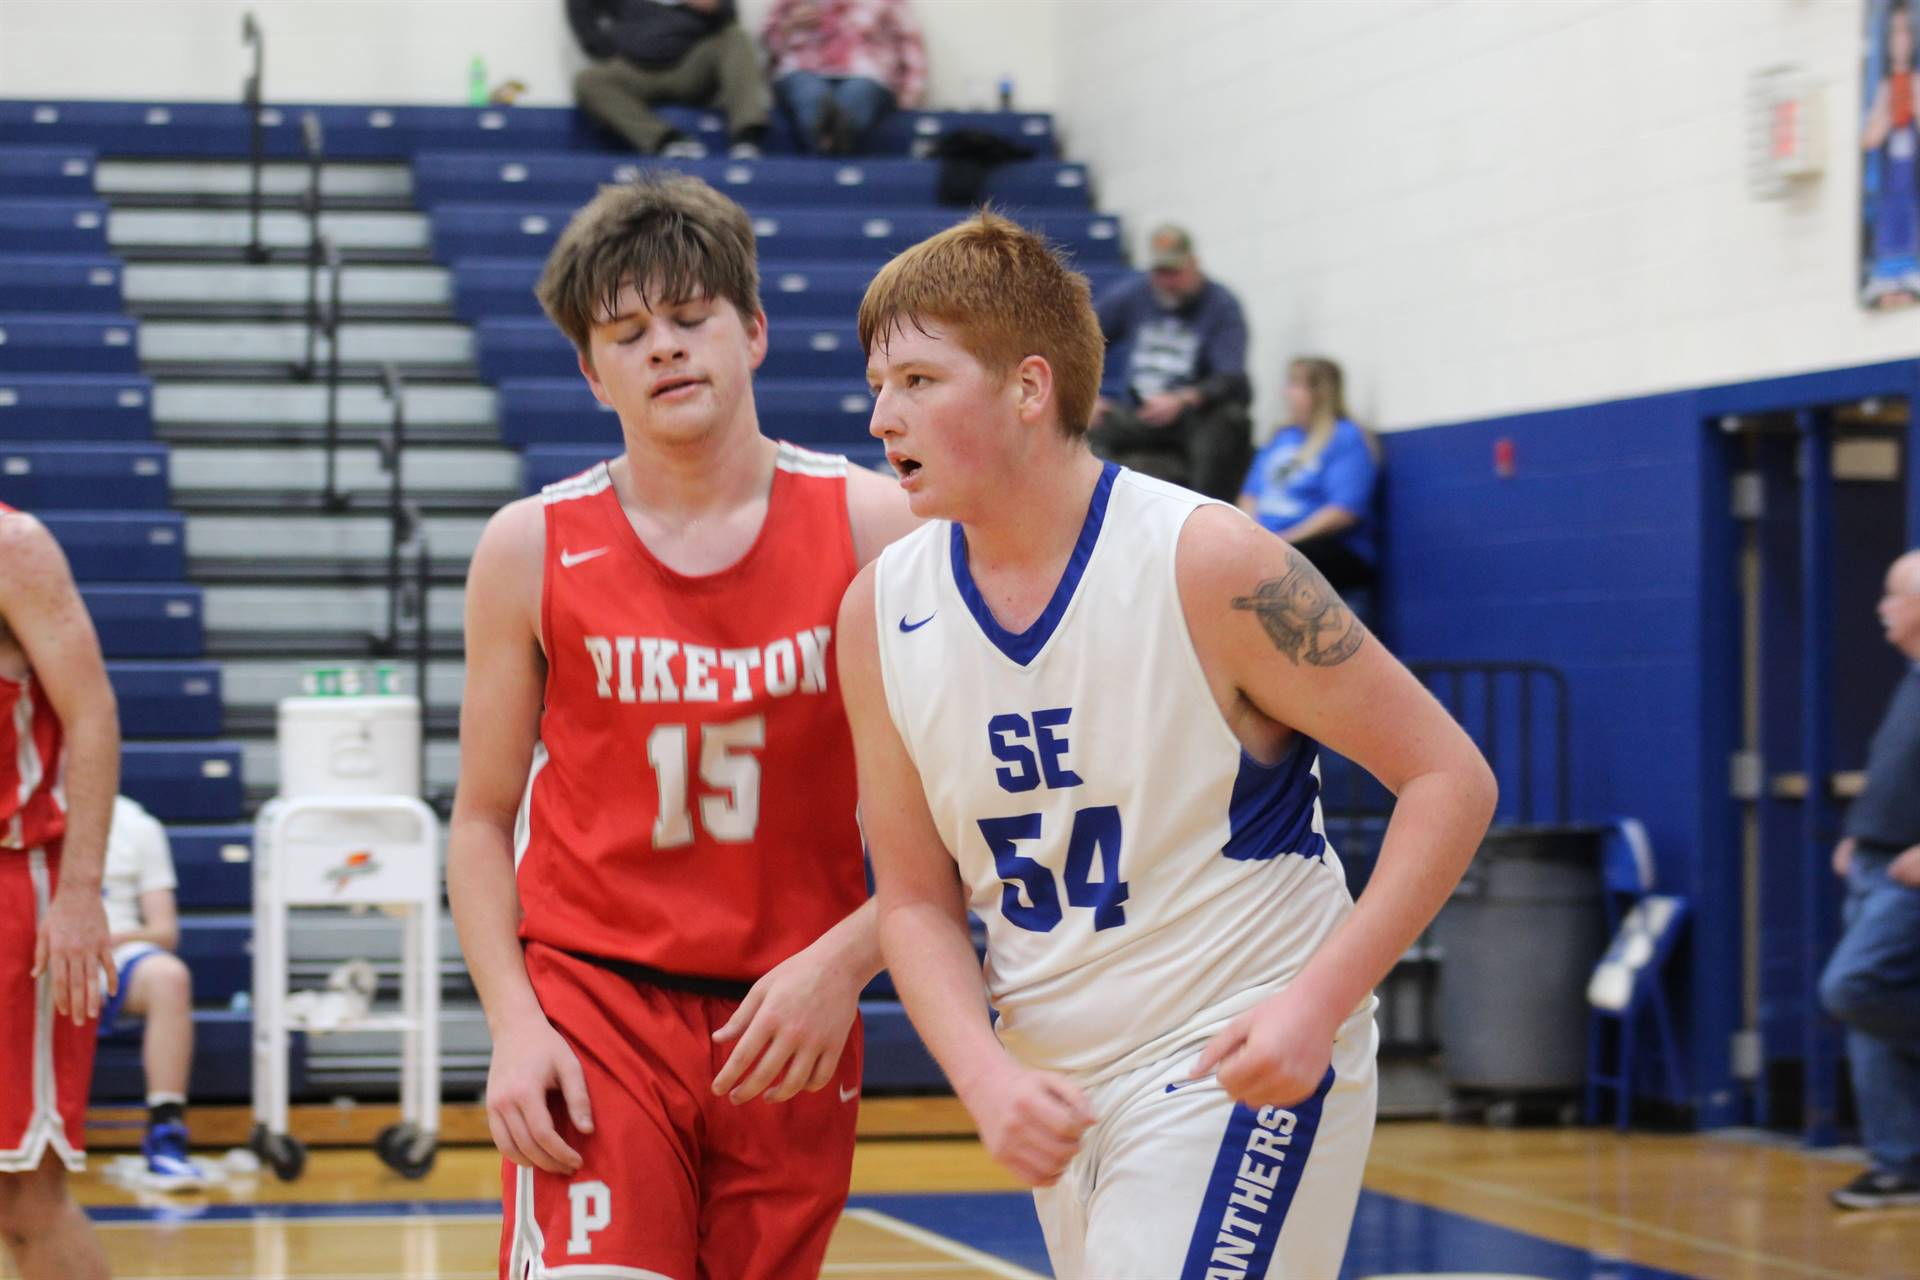 SE Boys Vs Piketon